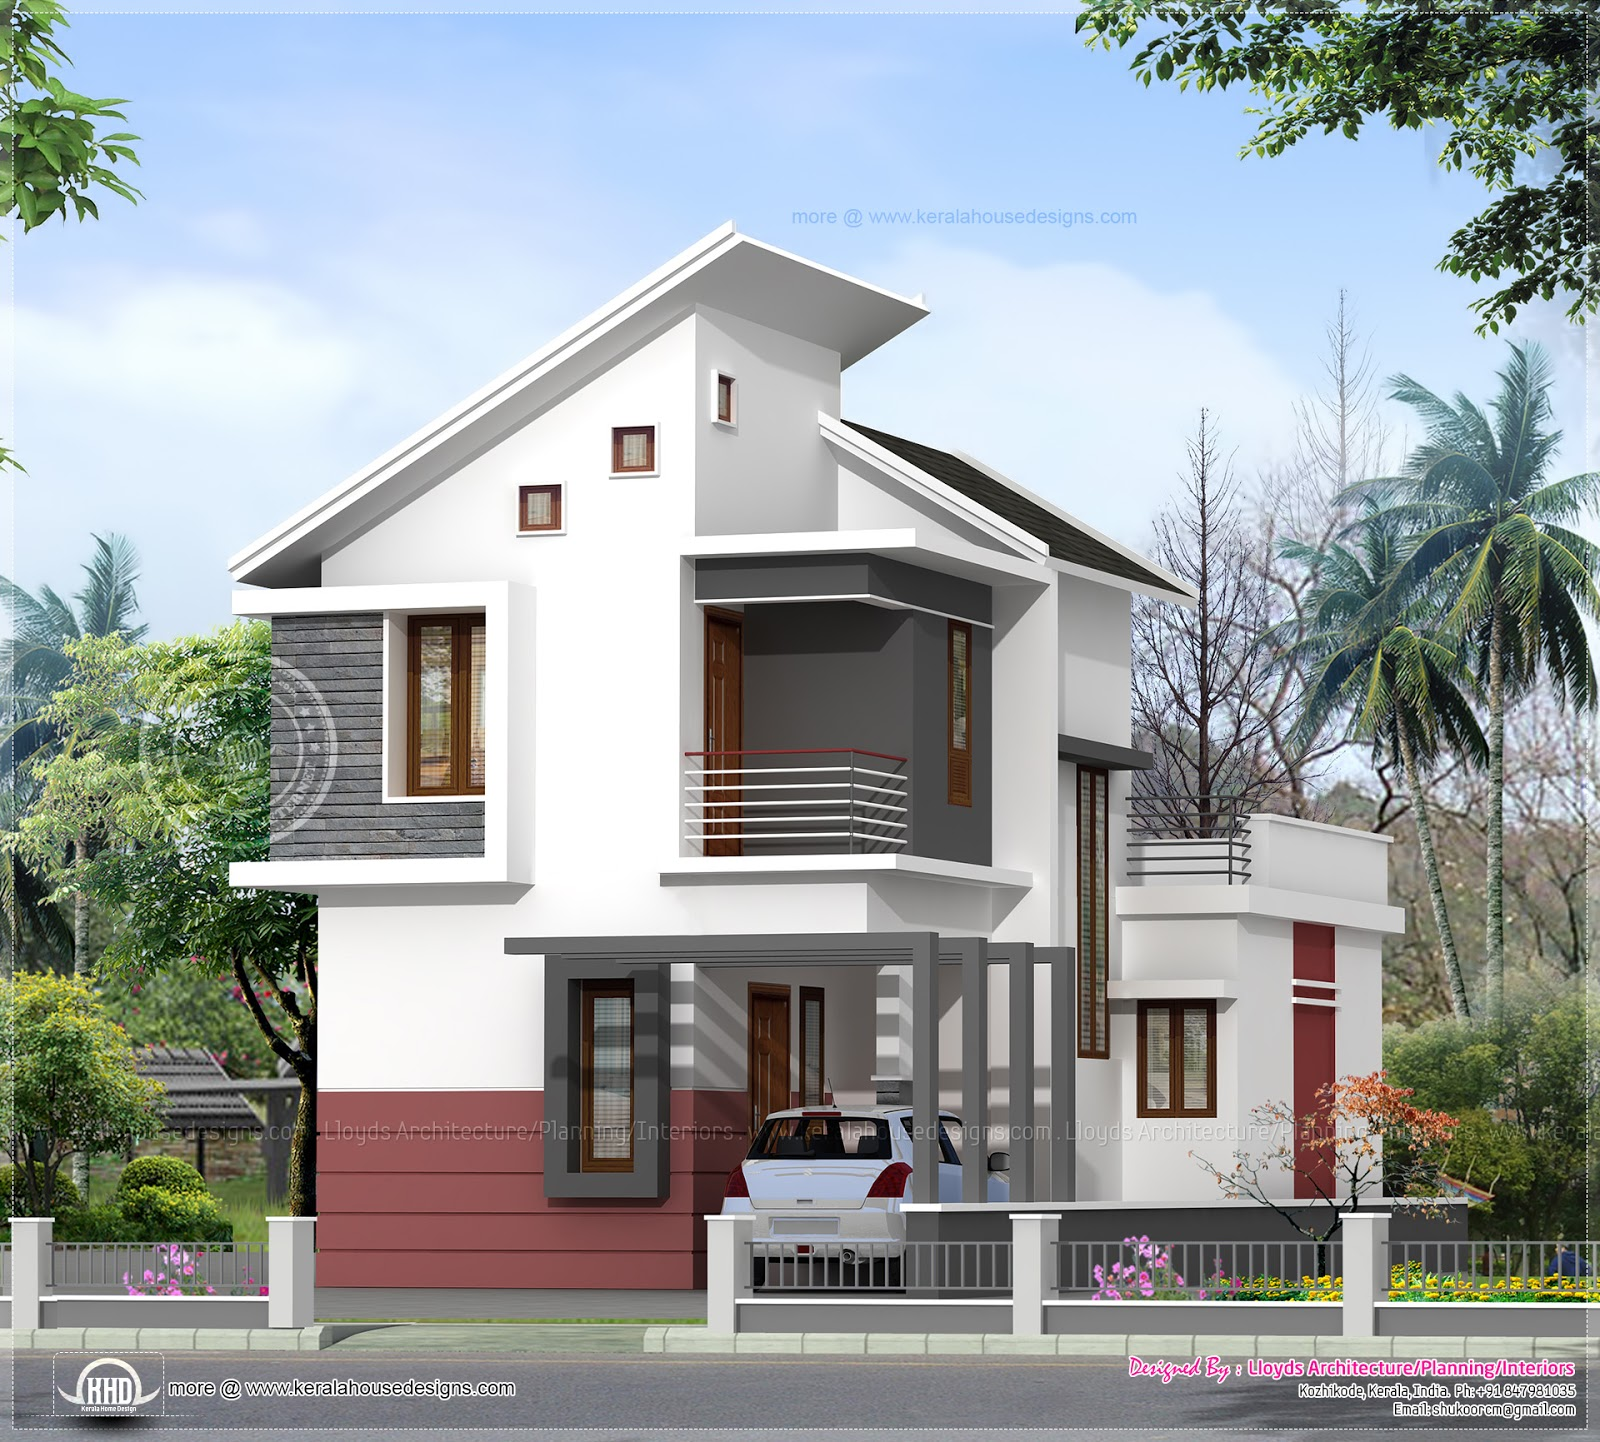 1197 sq ft 3 bedroom villa in 3 cents plot kerala home for House designs kerala style low cost